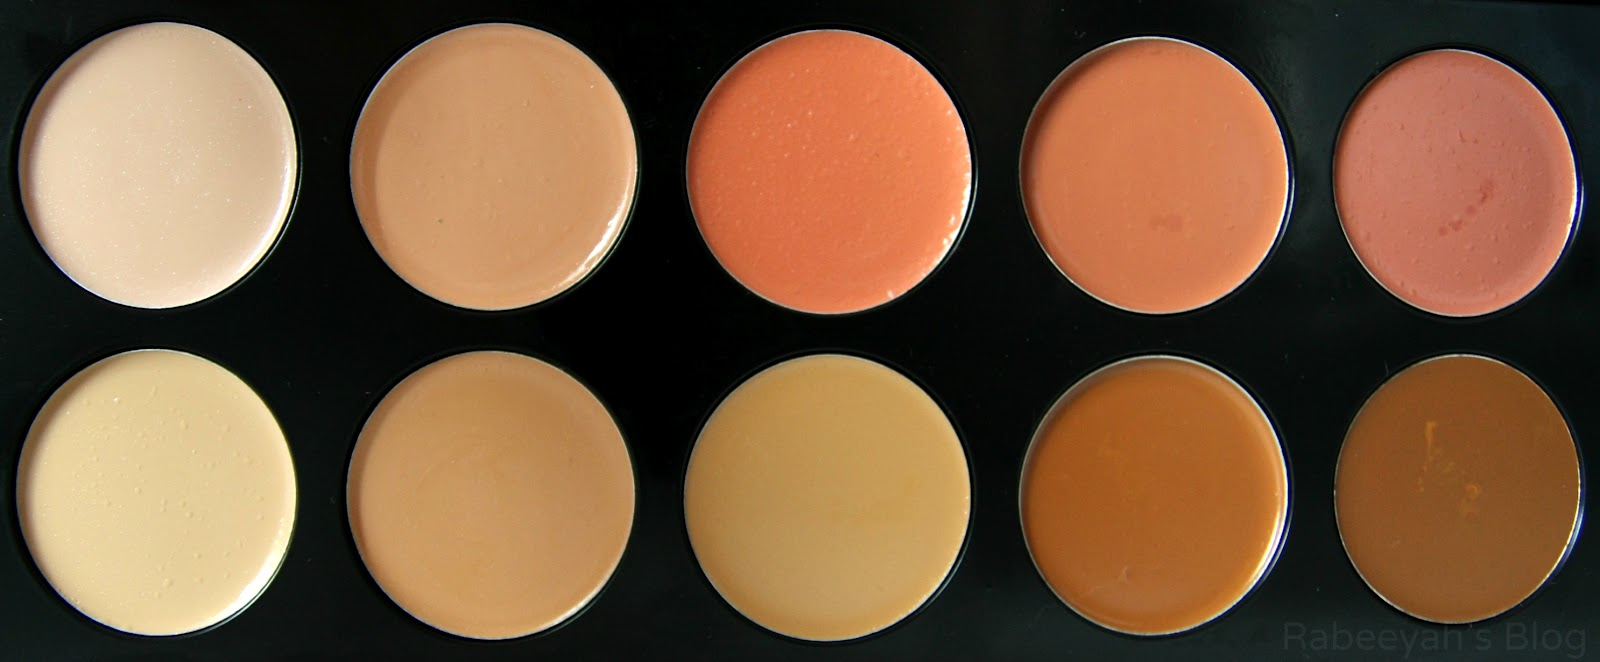 Bh Cosmetics 10 Color Camouflage And Concealer Palette Review Swatches